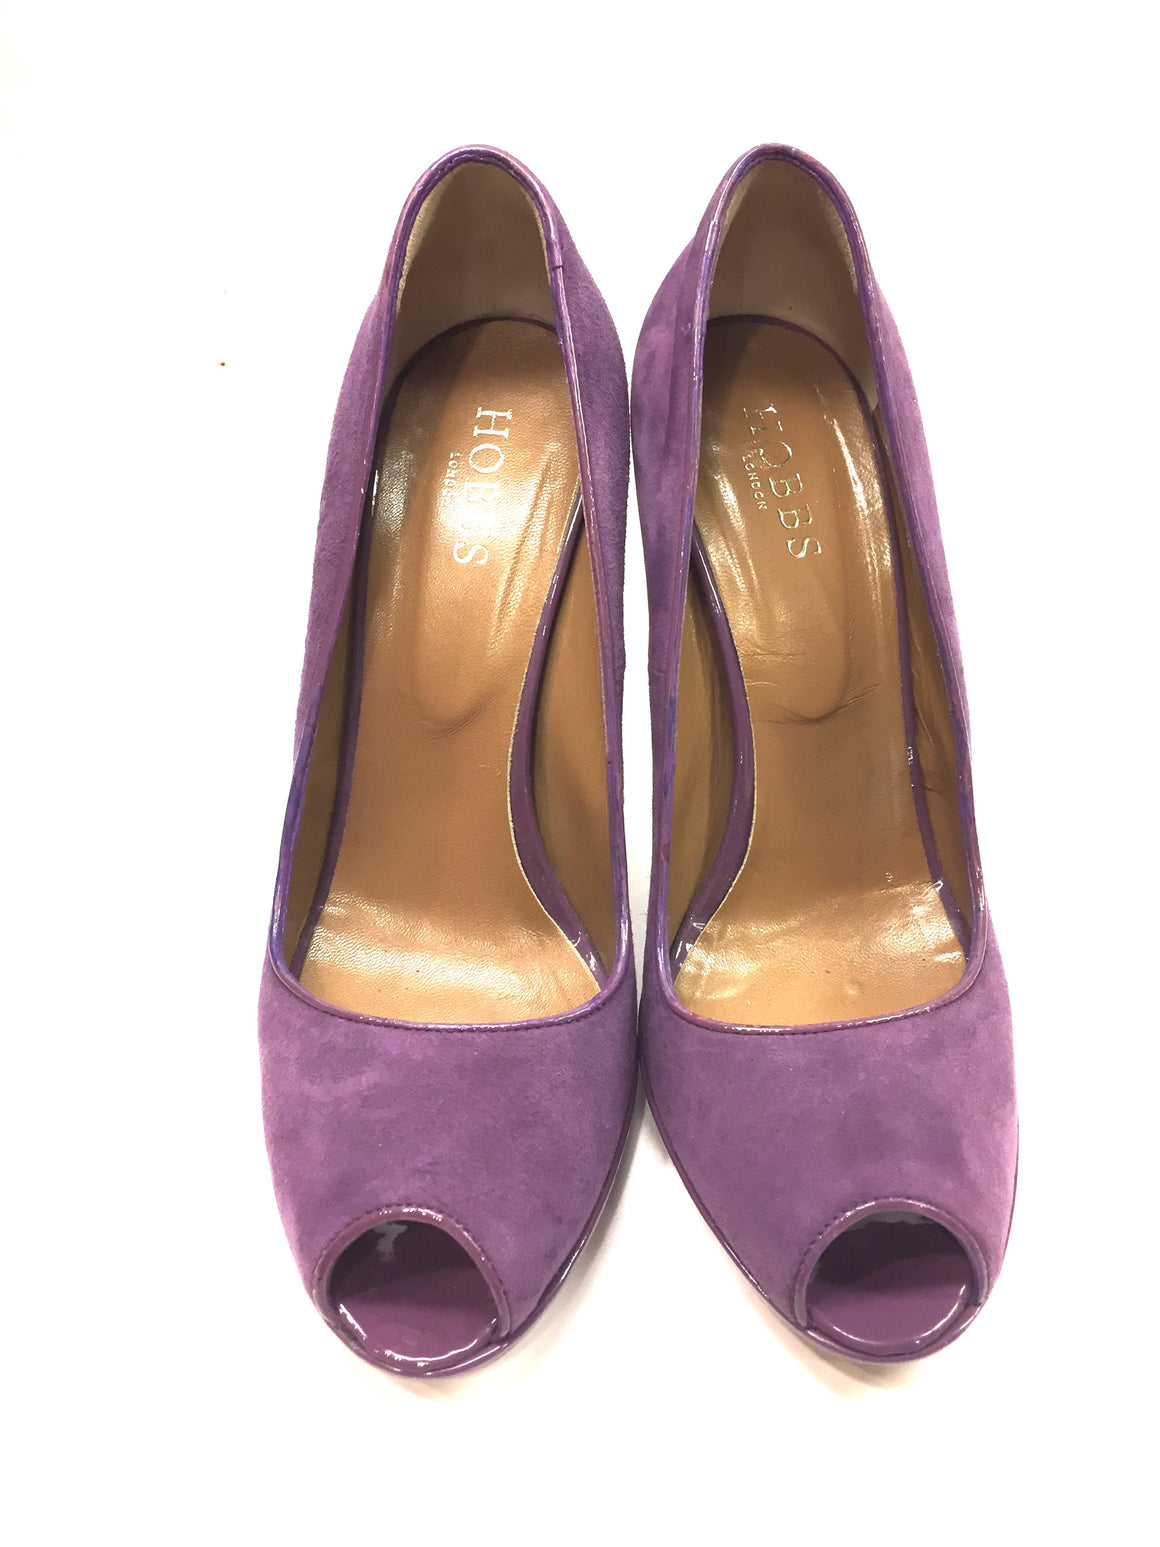 HOBBS LONDON Orchid-Purple Suede & Patent Leather Peep-Toe Platform Heels Pumps Sz39